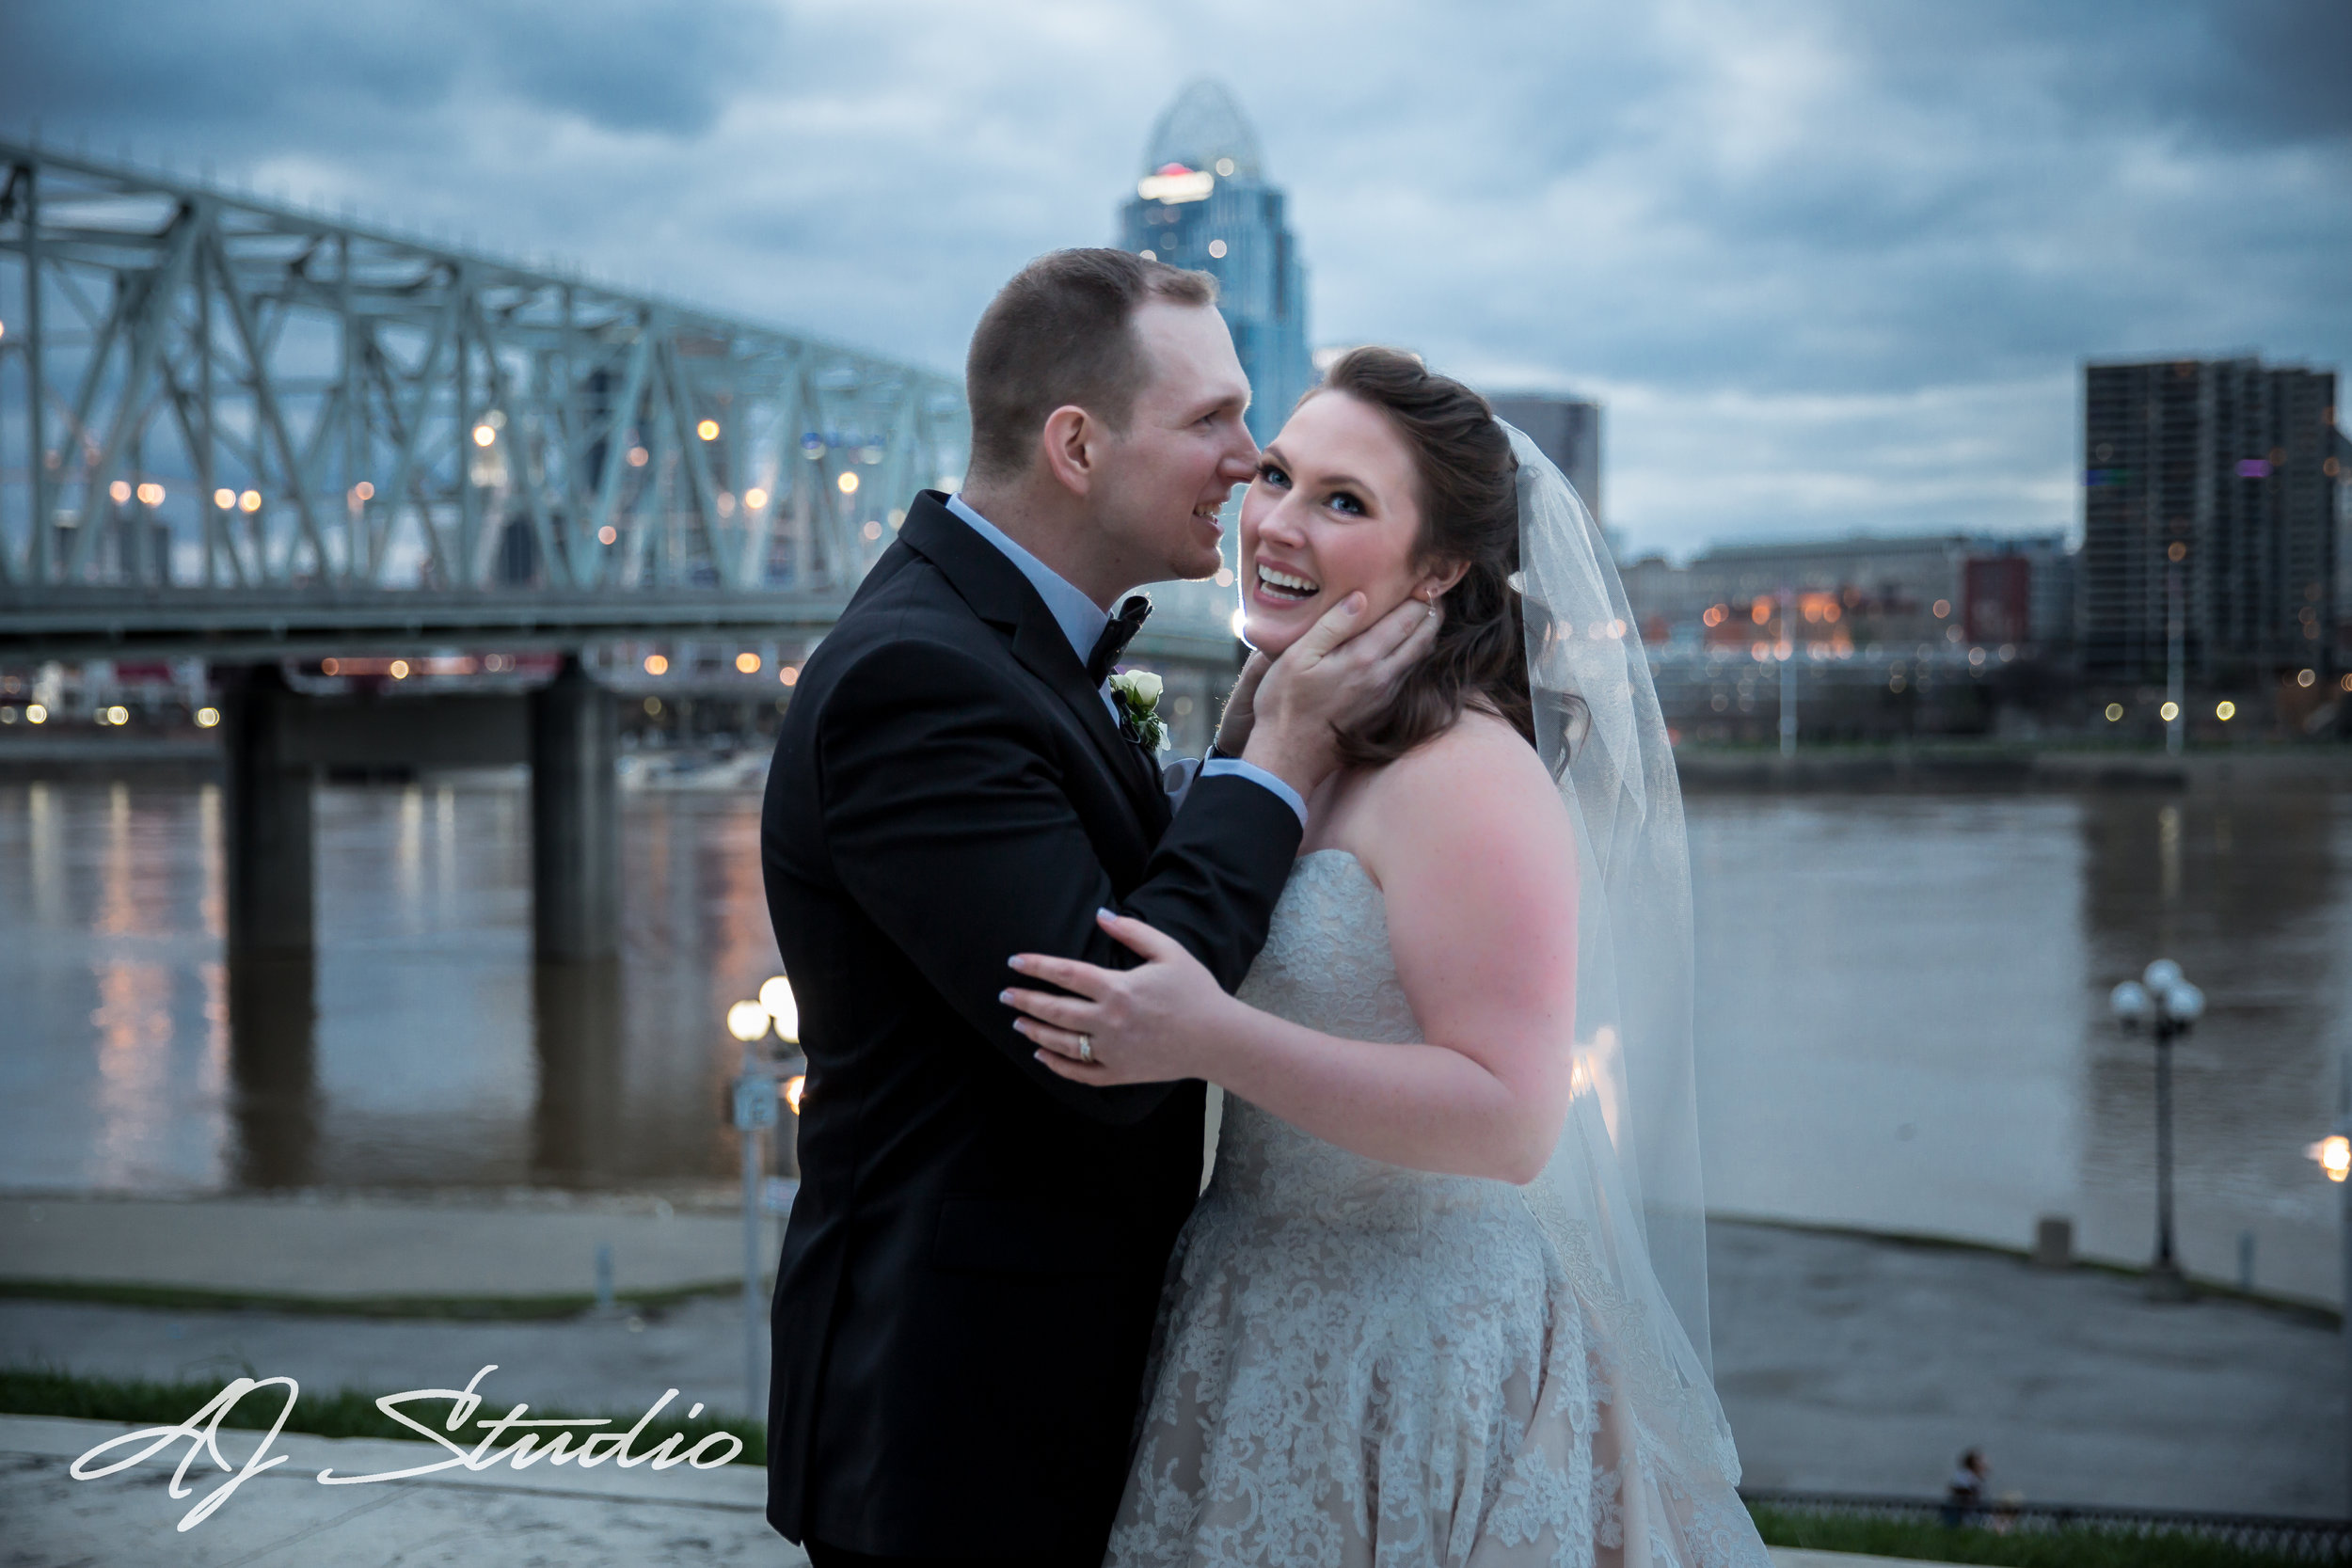 If you are interested in booking Newport Aquarium for your wedding, follow the link below. http://www.newportaquarium.com If you would like AJ Studio Photography by Angela & Jaime to Photograph your wedding, please contact us below. https://www.ajstudiollc.com/say-hi/